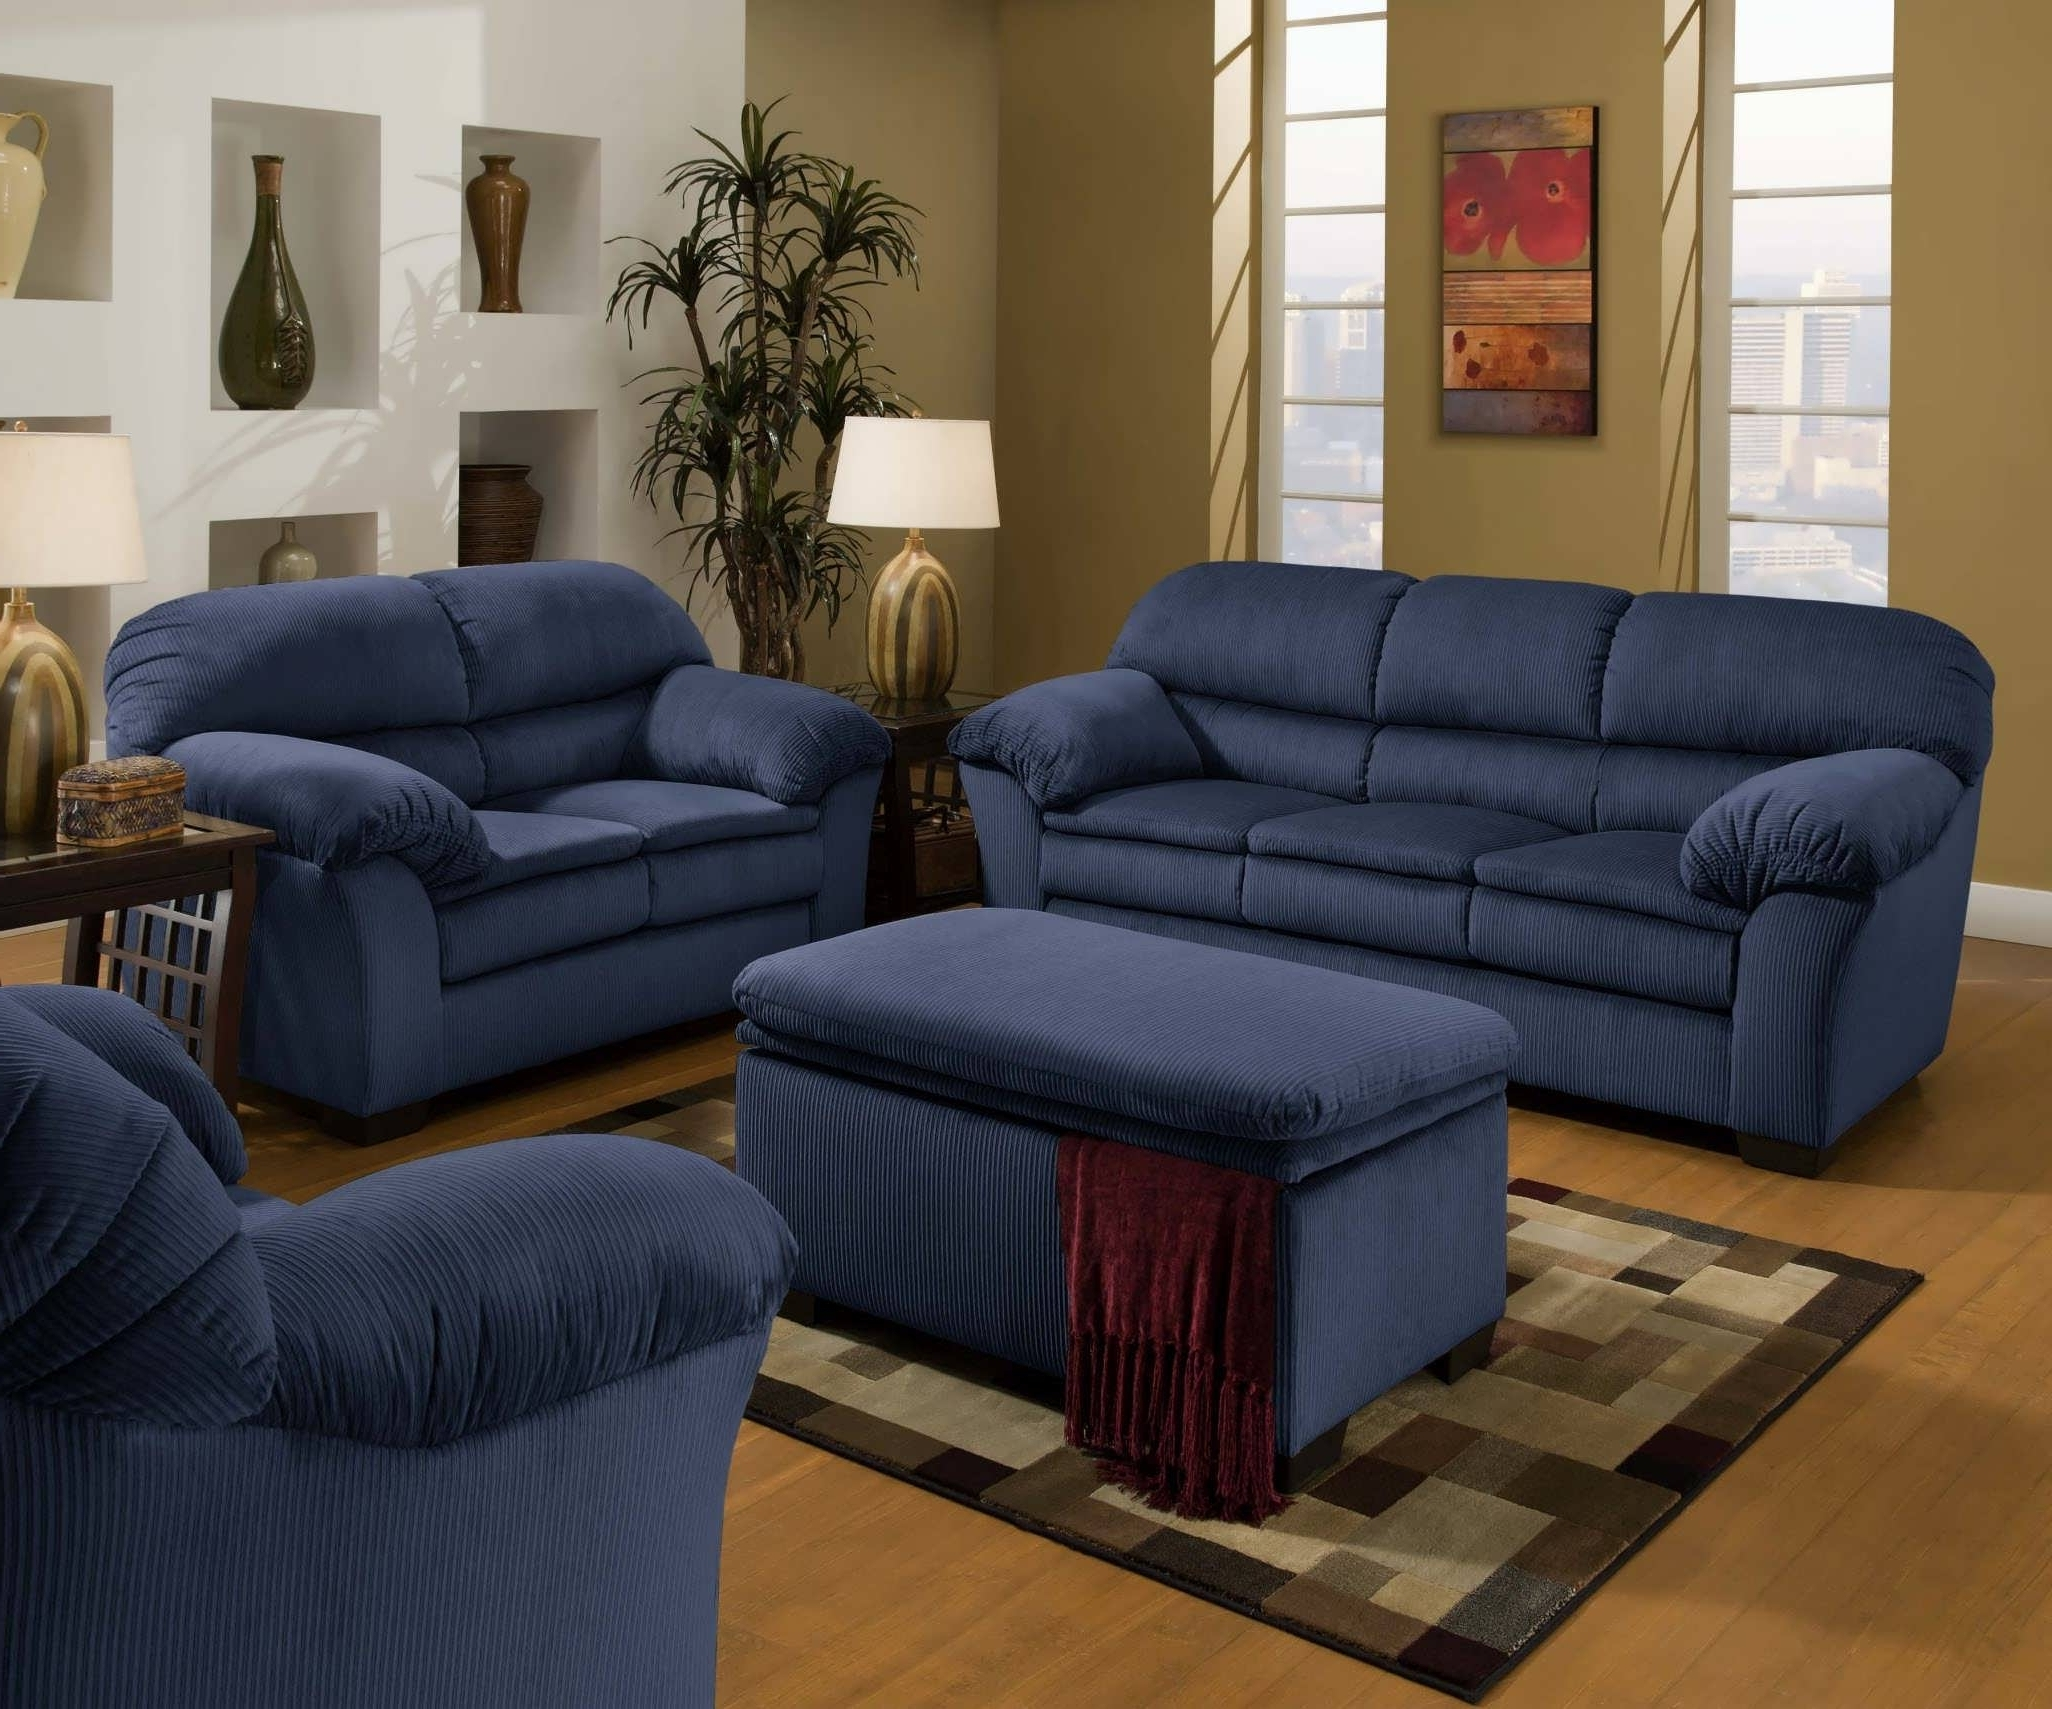 Well Known Blue Sofa Chairs Pertaining To Blue Sofa Set Large Office Chairs Ottomans & Storage Dressers 17Ec (View 19 of 20)